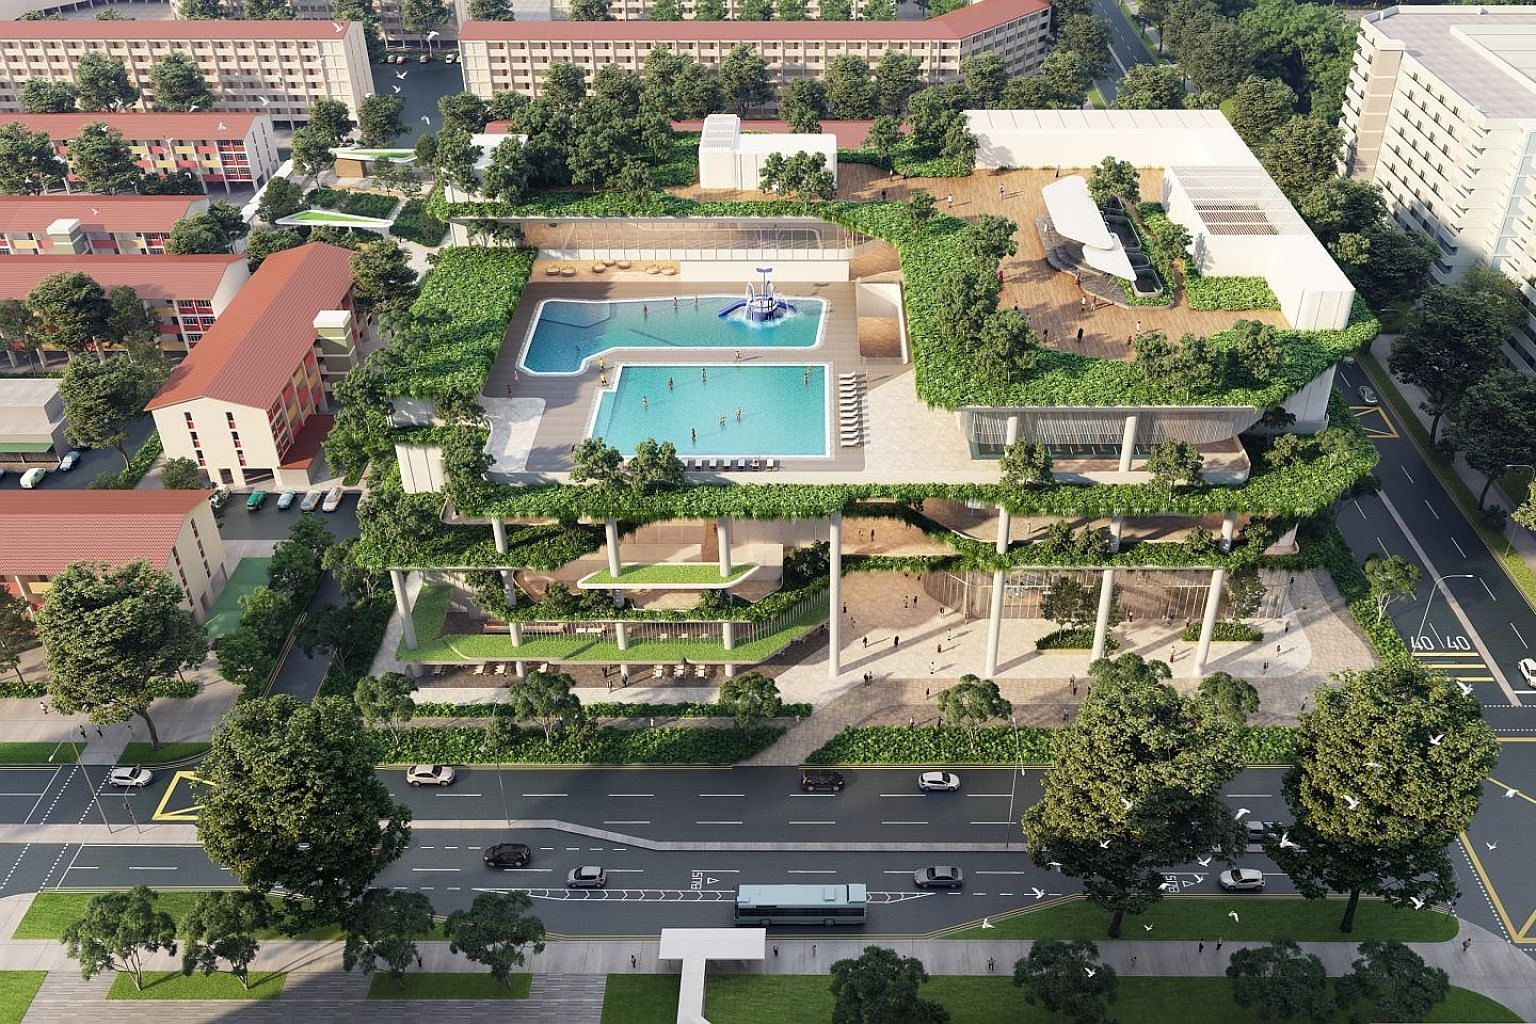 An artist's impression of Chill @ Chong Pang, which will include swimming pools, a gym, an upgraded hawker centre and a community club. PHOTO: SINGAPORE LAND AUTHORITY